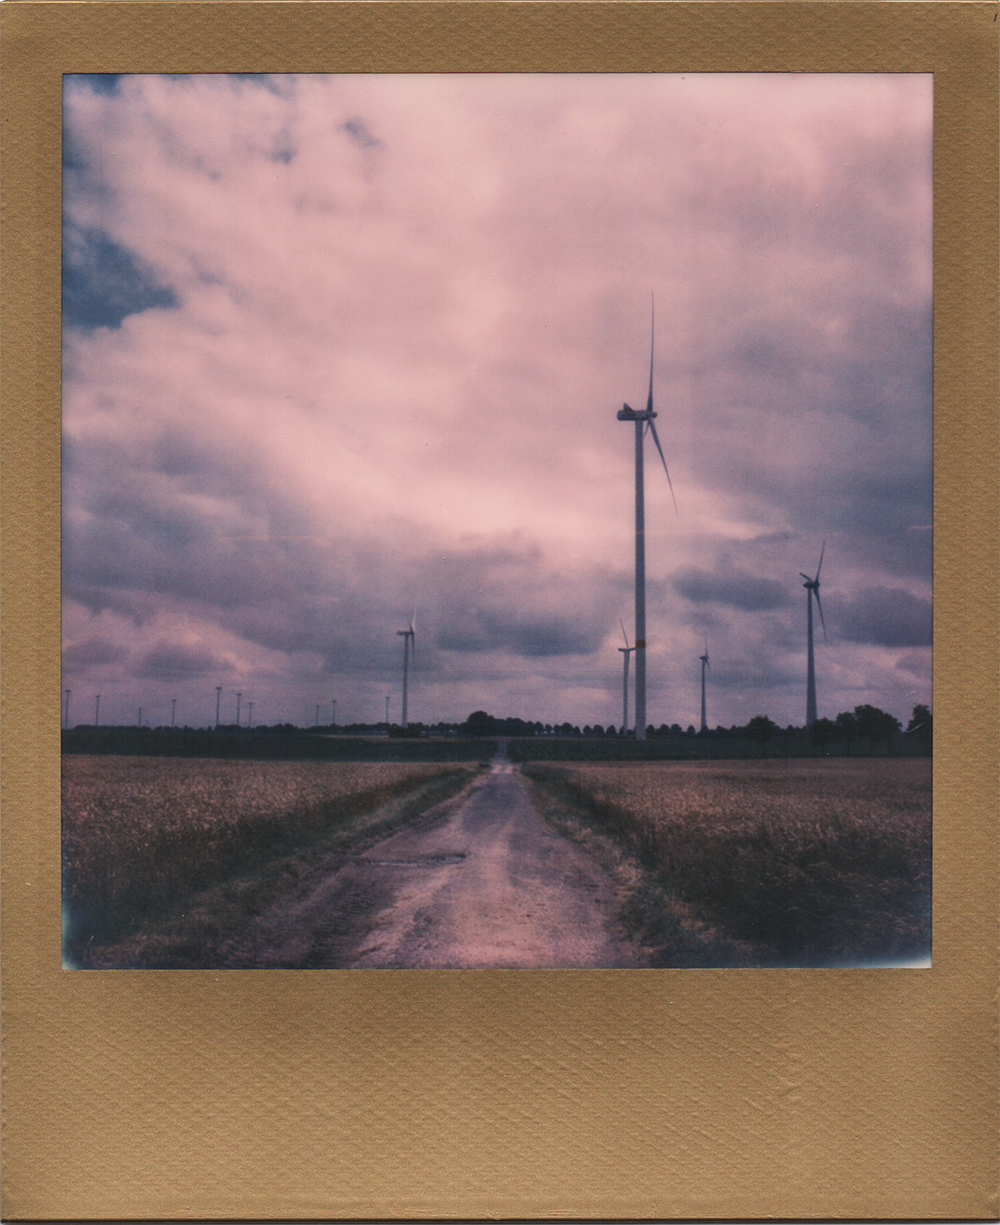 : Blowing in The Wind | SX70 | Expired Impossible Prioject Gold Frame Film | Karin Claus